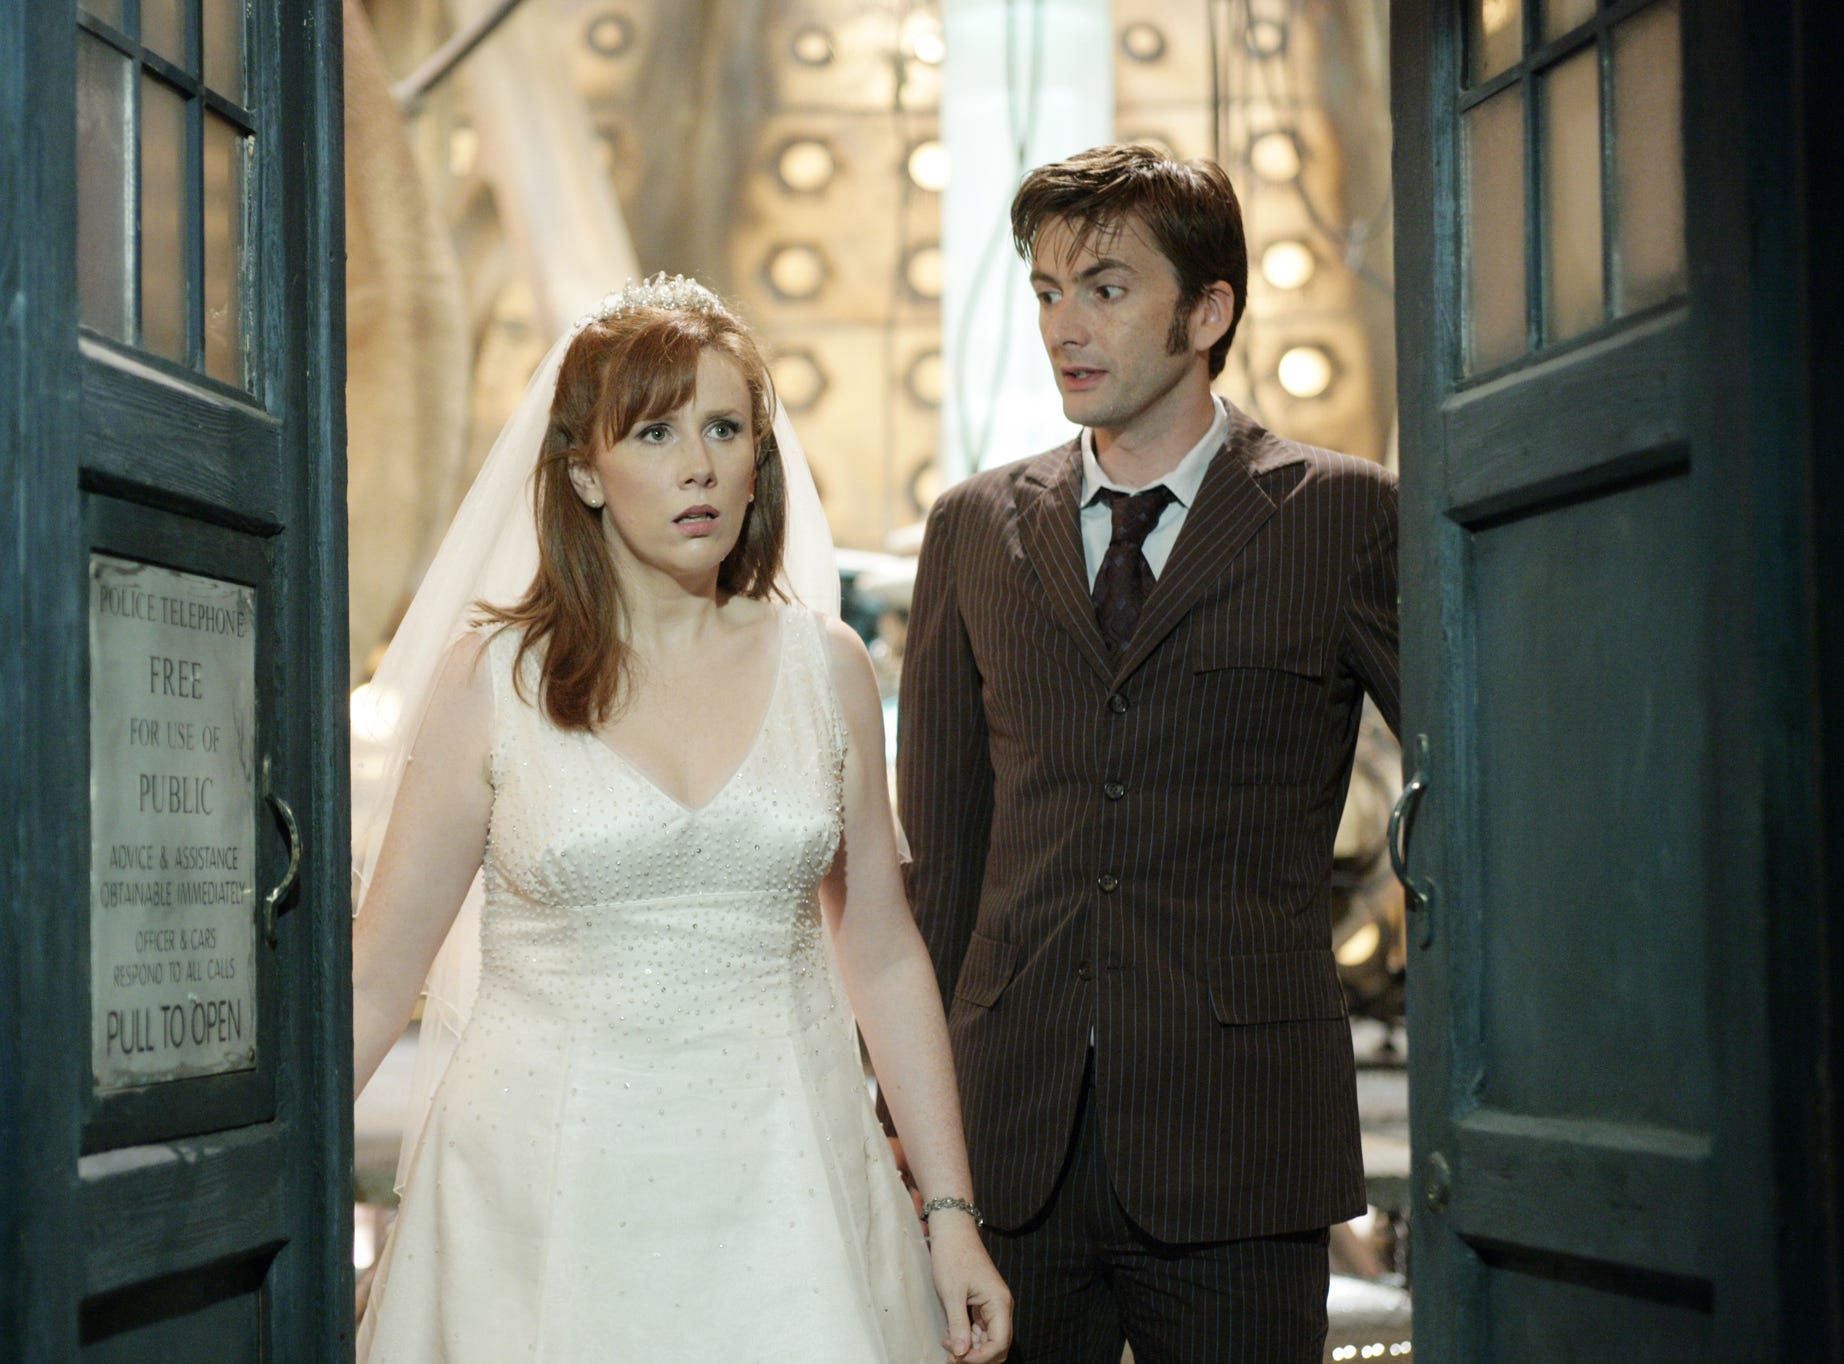 """Catherine Tate made her first appearance as Donna Noble when she was swept aboard the Tardis during her wedding. Years later, she was reunited with the Doctor to travel with him. After """"Doctor Who,"""" Tate spent three seasons on NBC's """"The Office."""""""